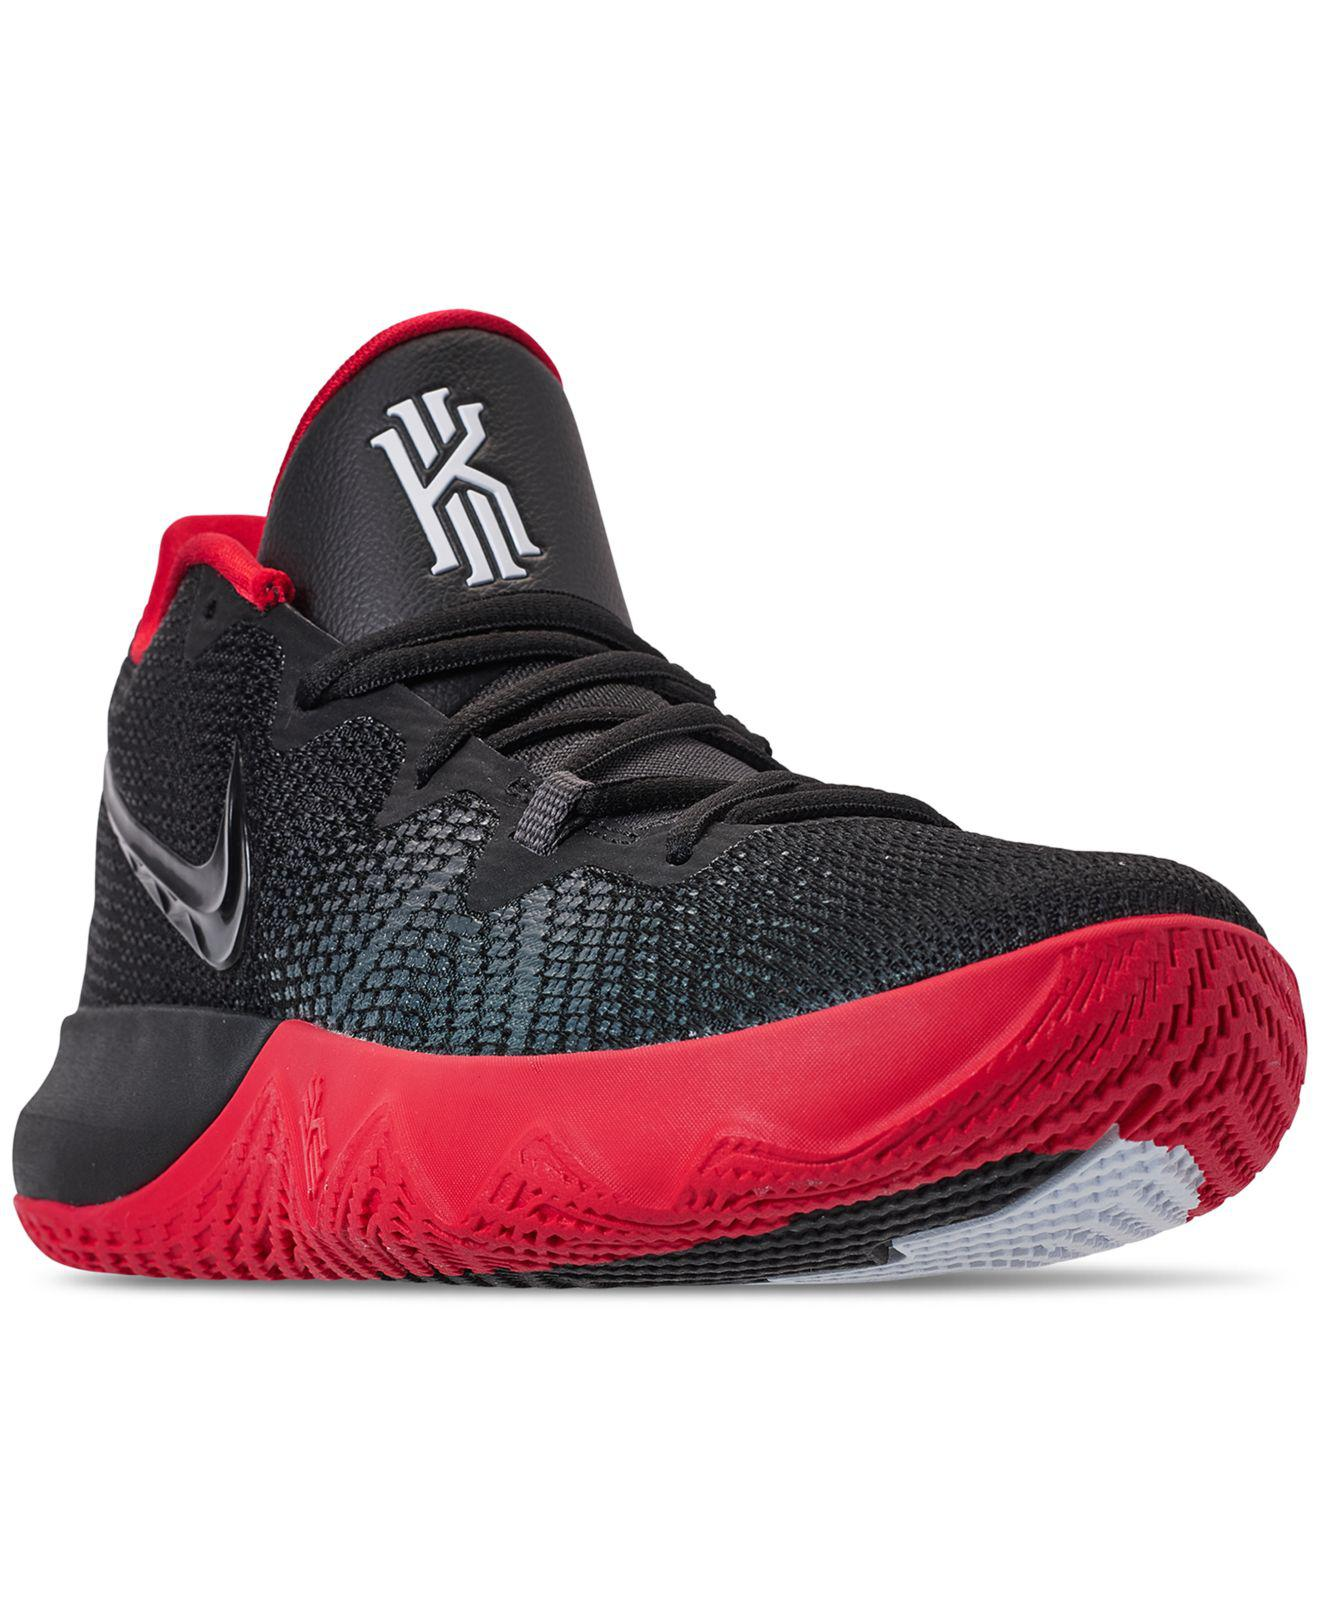 8f11e7713dd Lyst - Nike Kyrie Flytrap Basketball Sneakers From Finish Line in ...